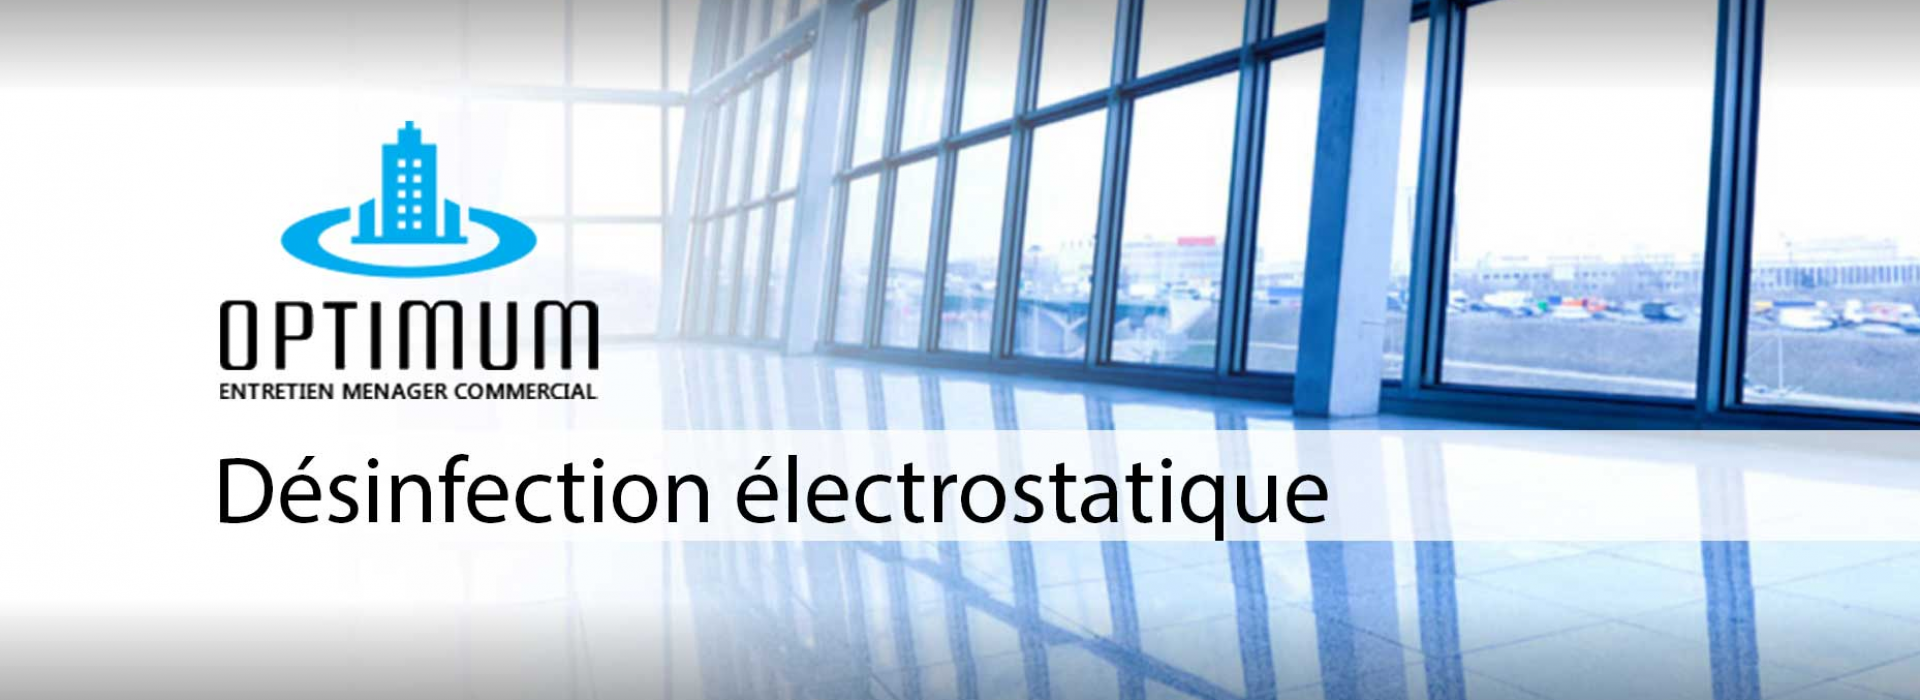 page-desinfection-electrostatique.png